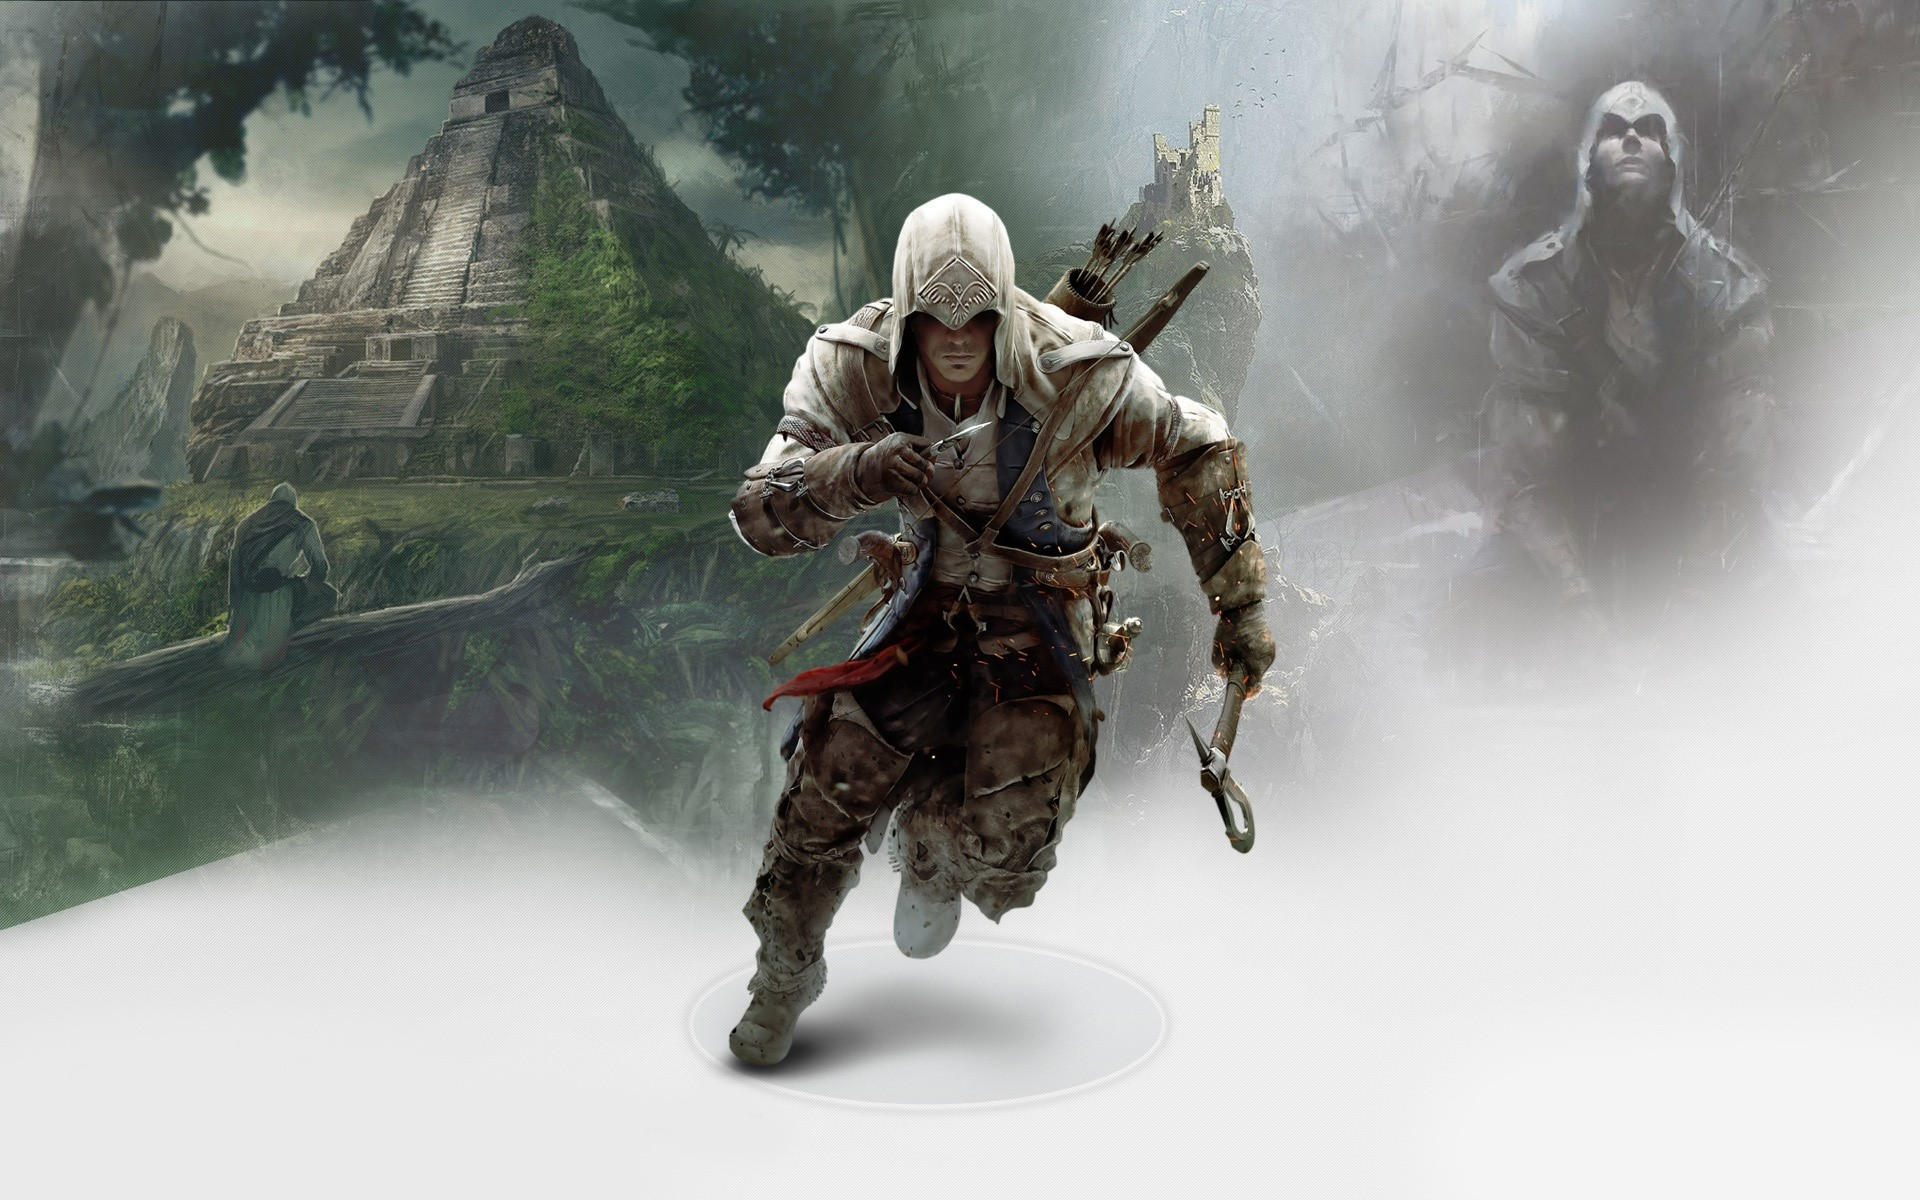 Fondos de pantalla Connor in Assassins Creed 3